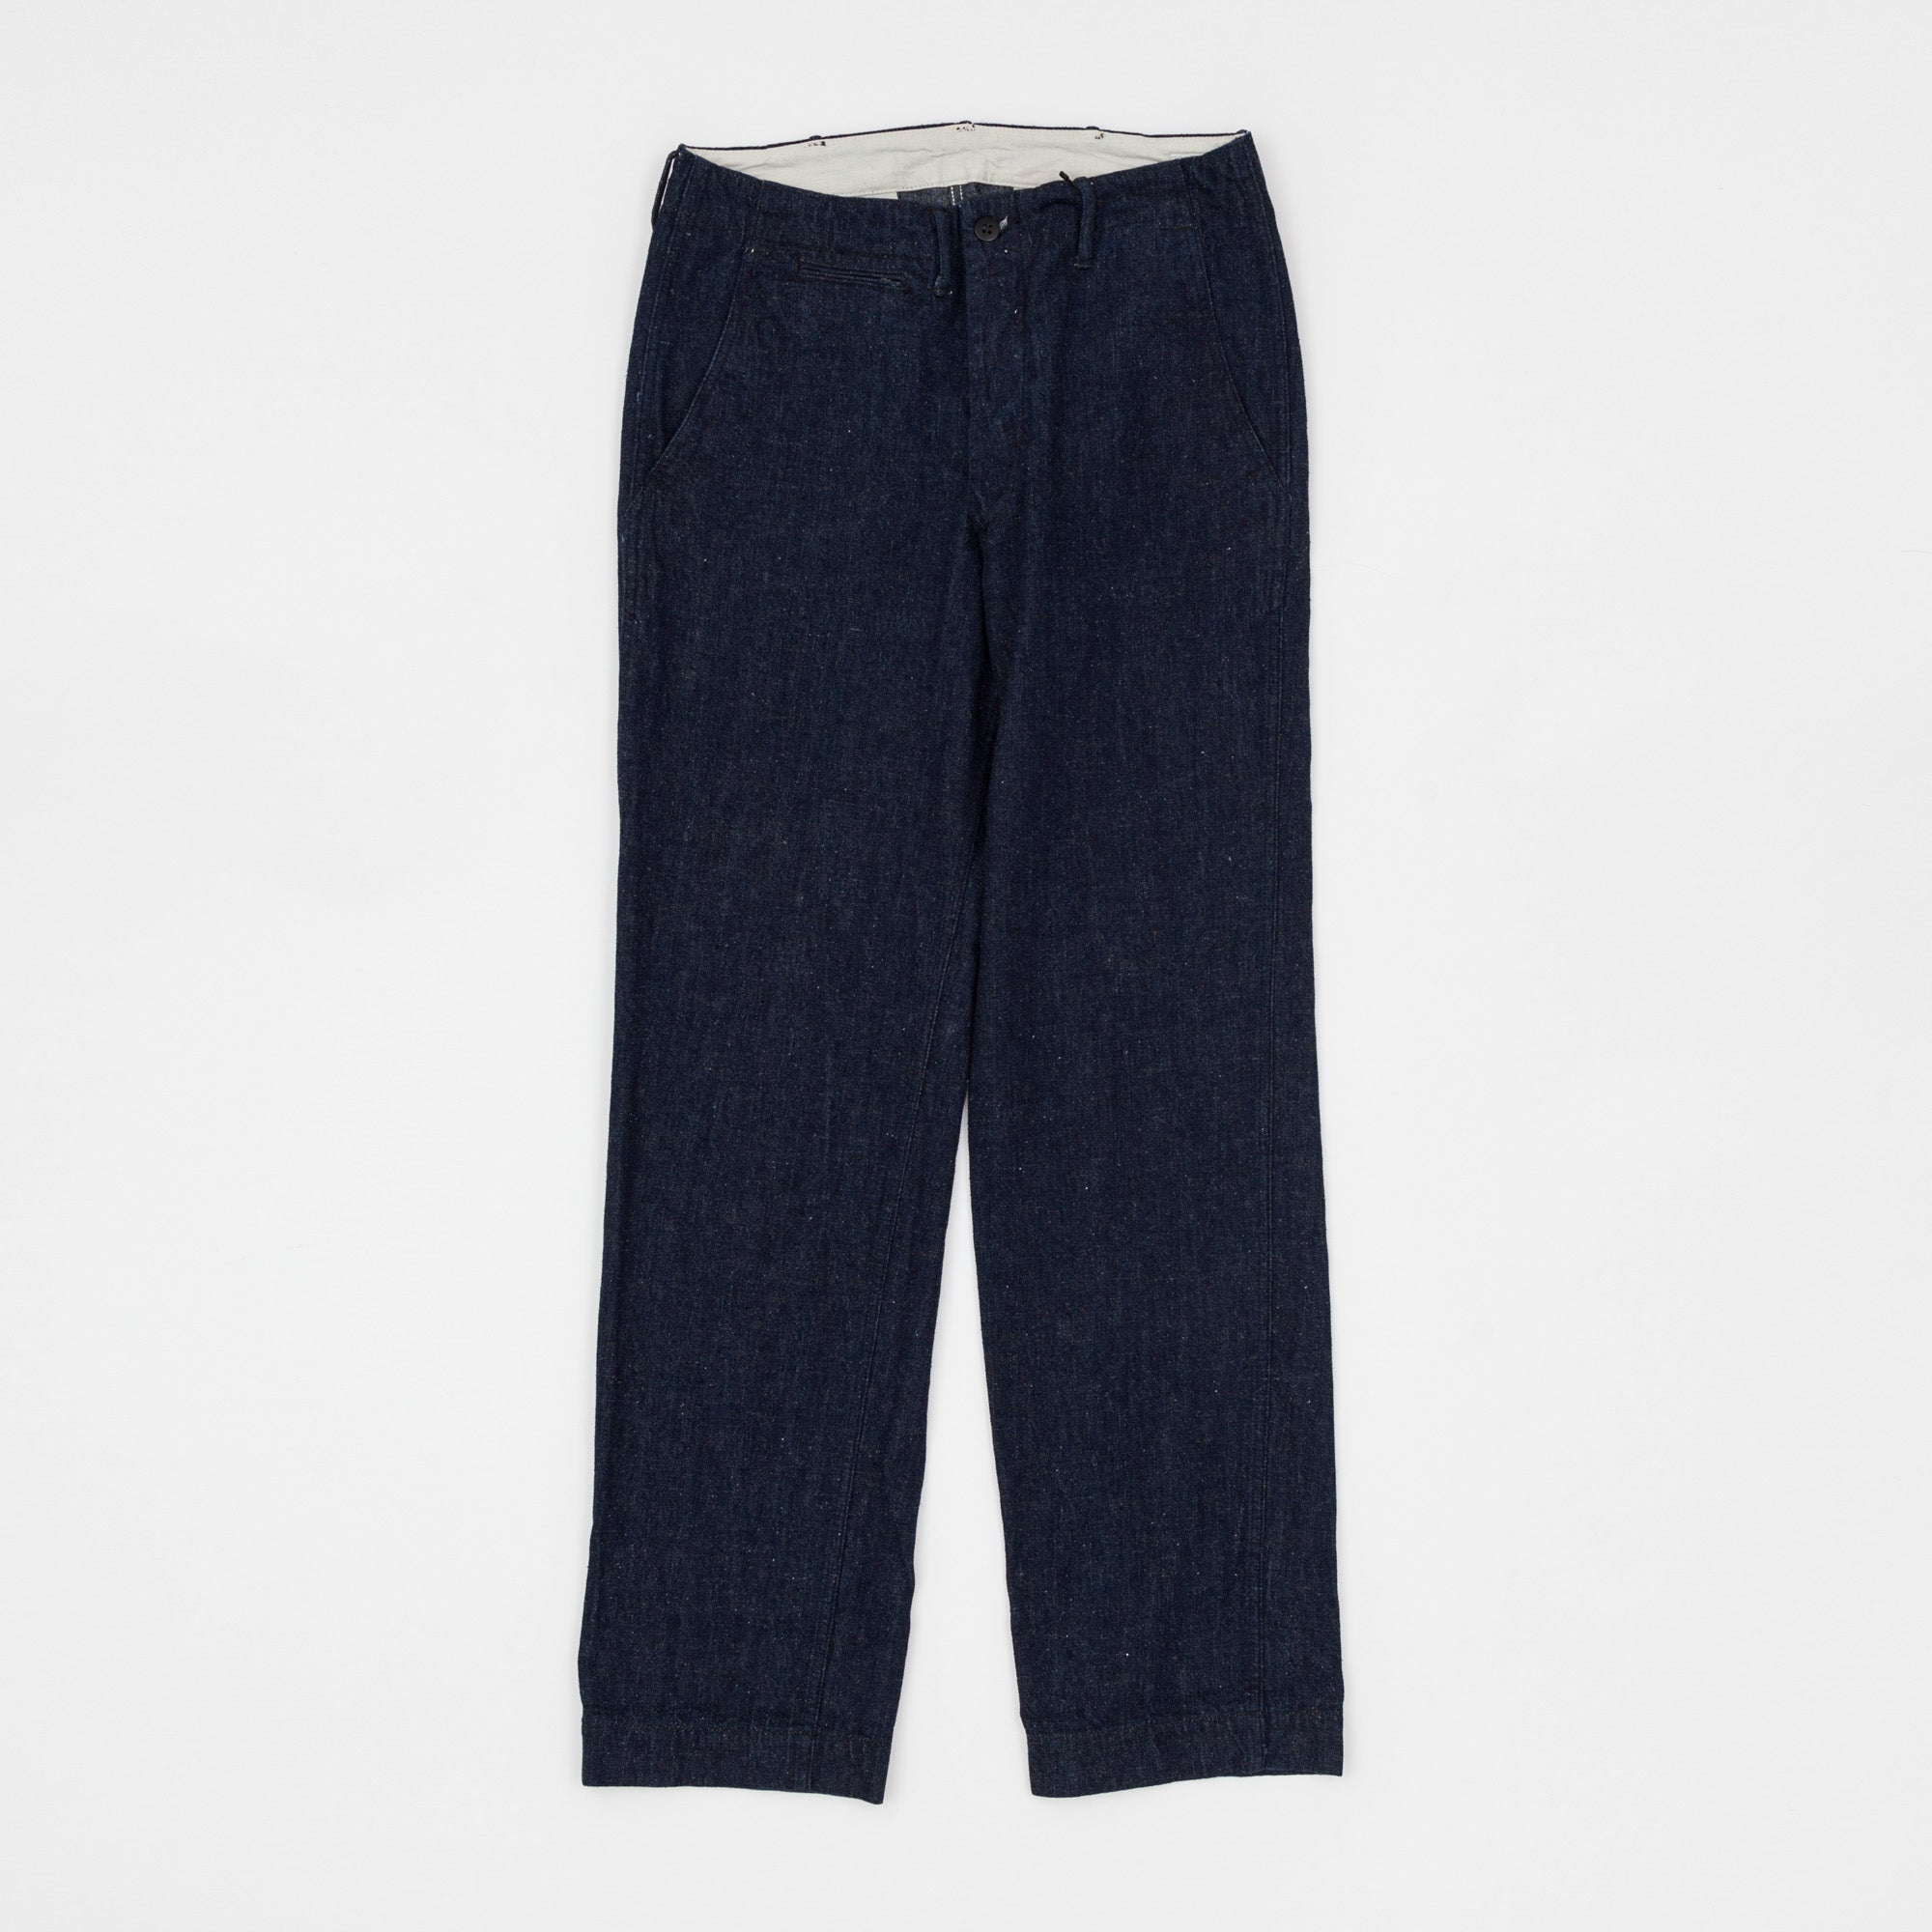 Warehouse & Co. Lot 1082 Chinos